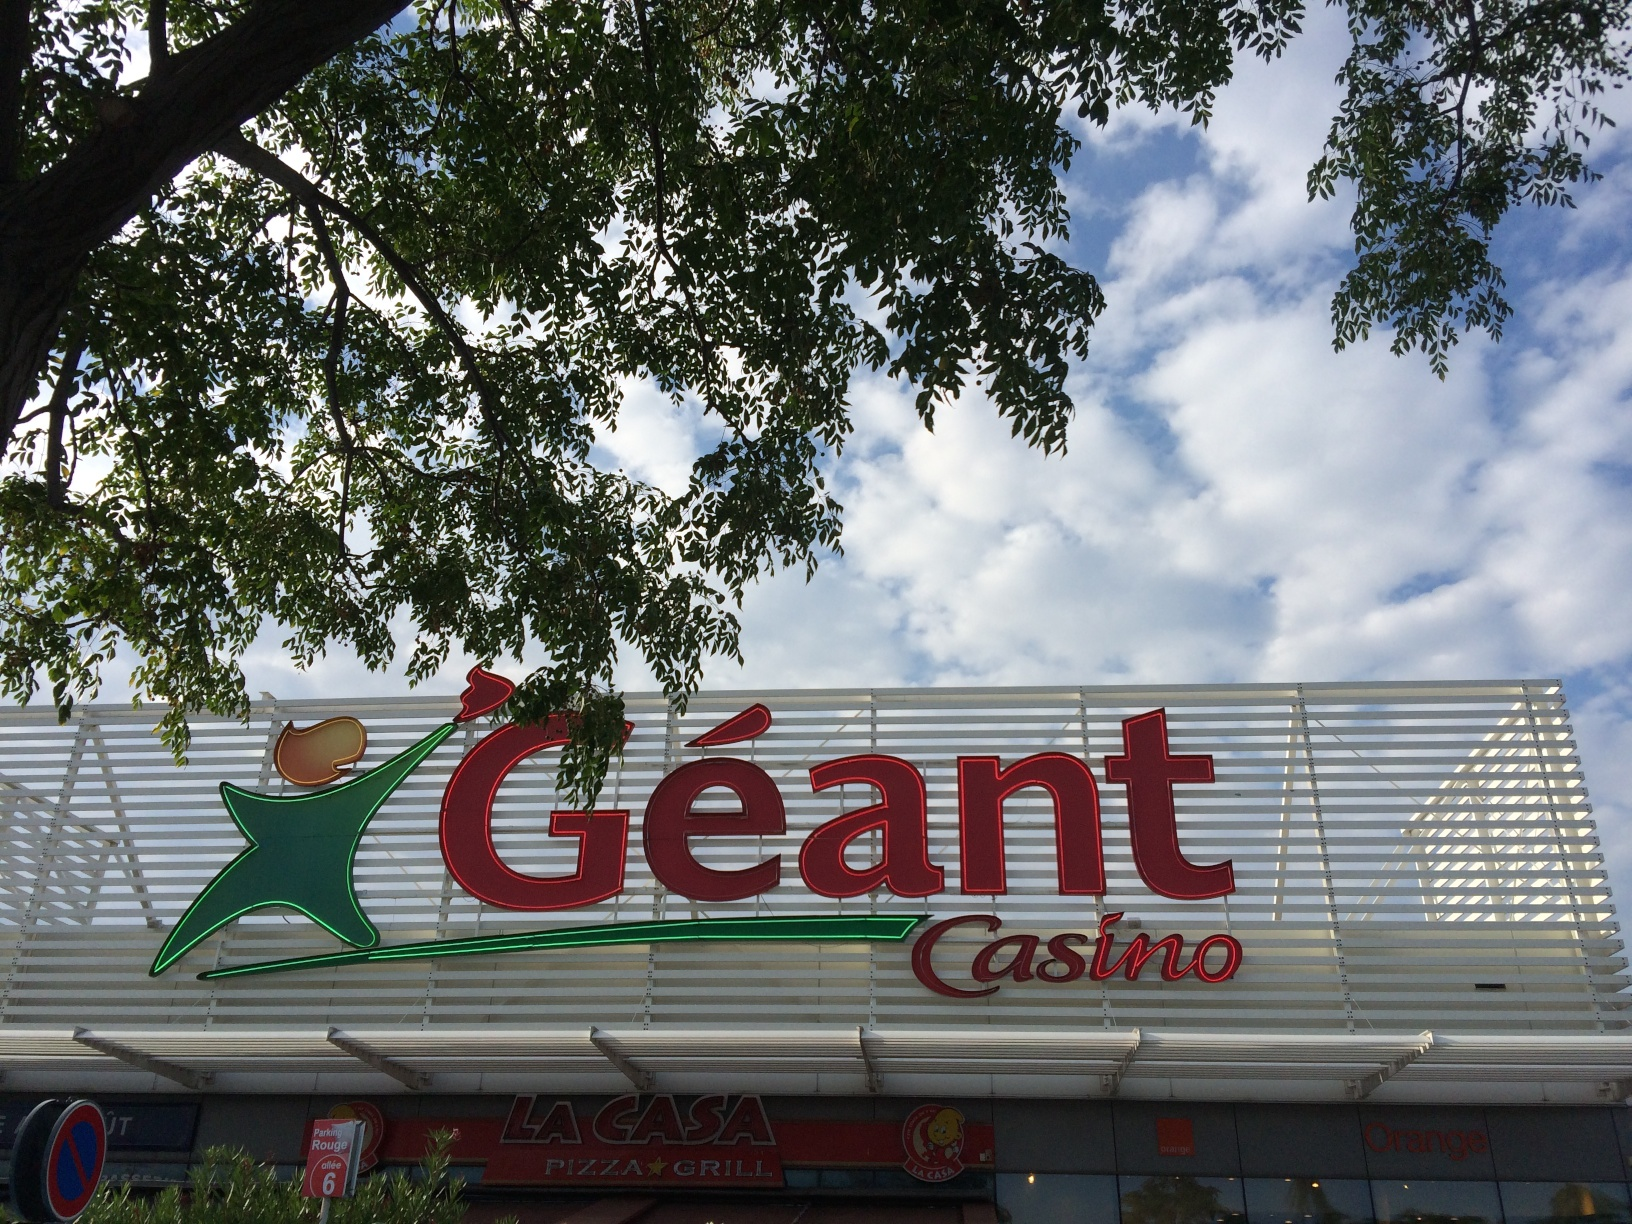 Geant Casino Grocery Store